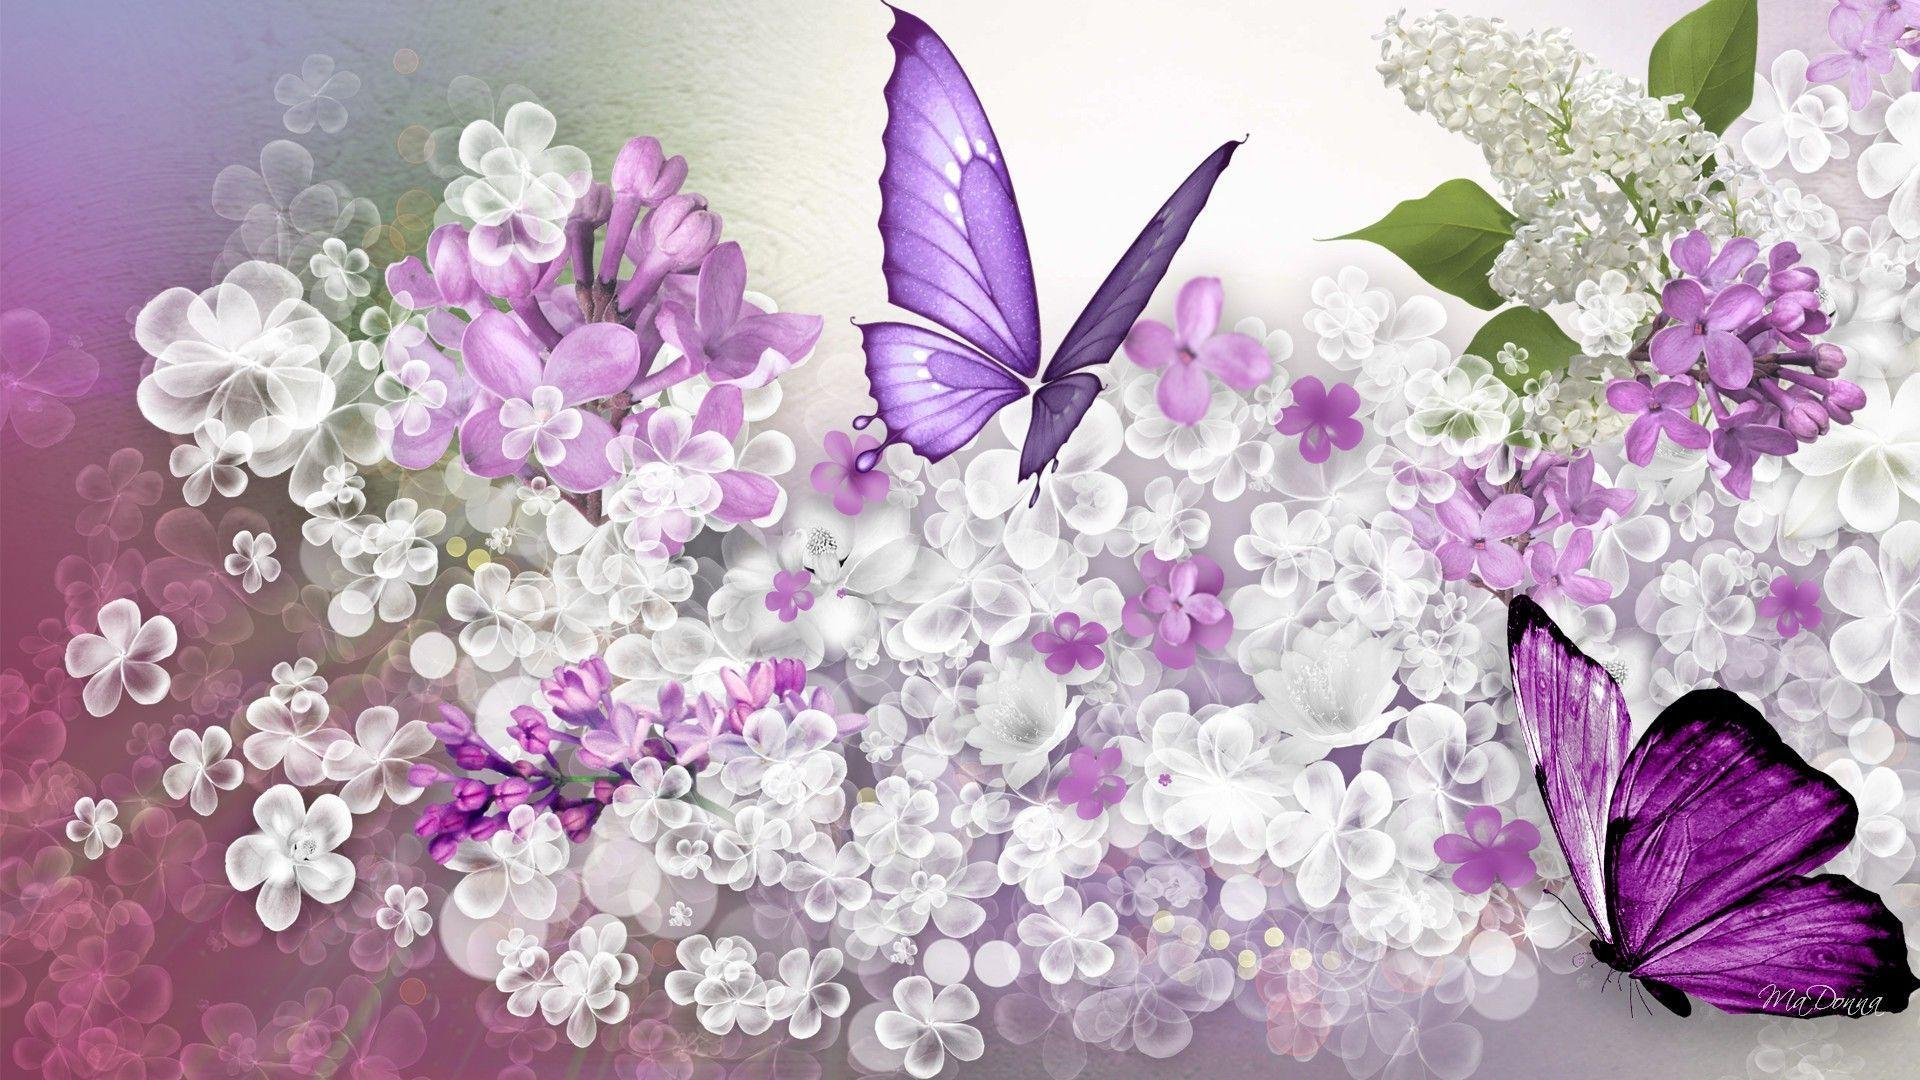 Lilac wallpapers wallpaper cave for Lilac butterfly wallpaper